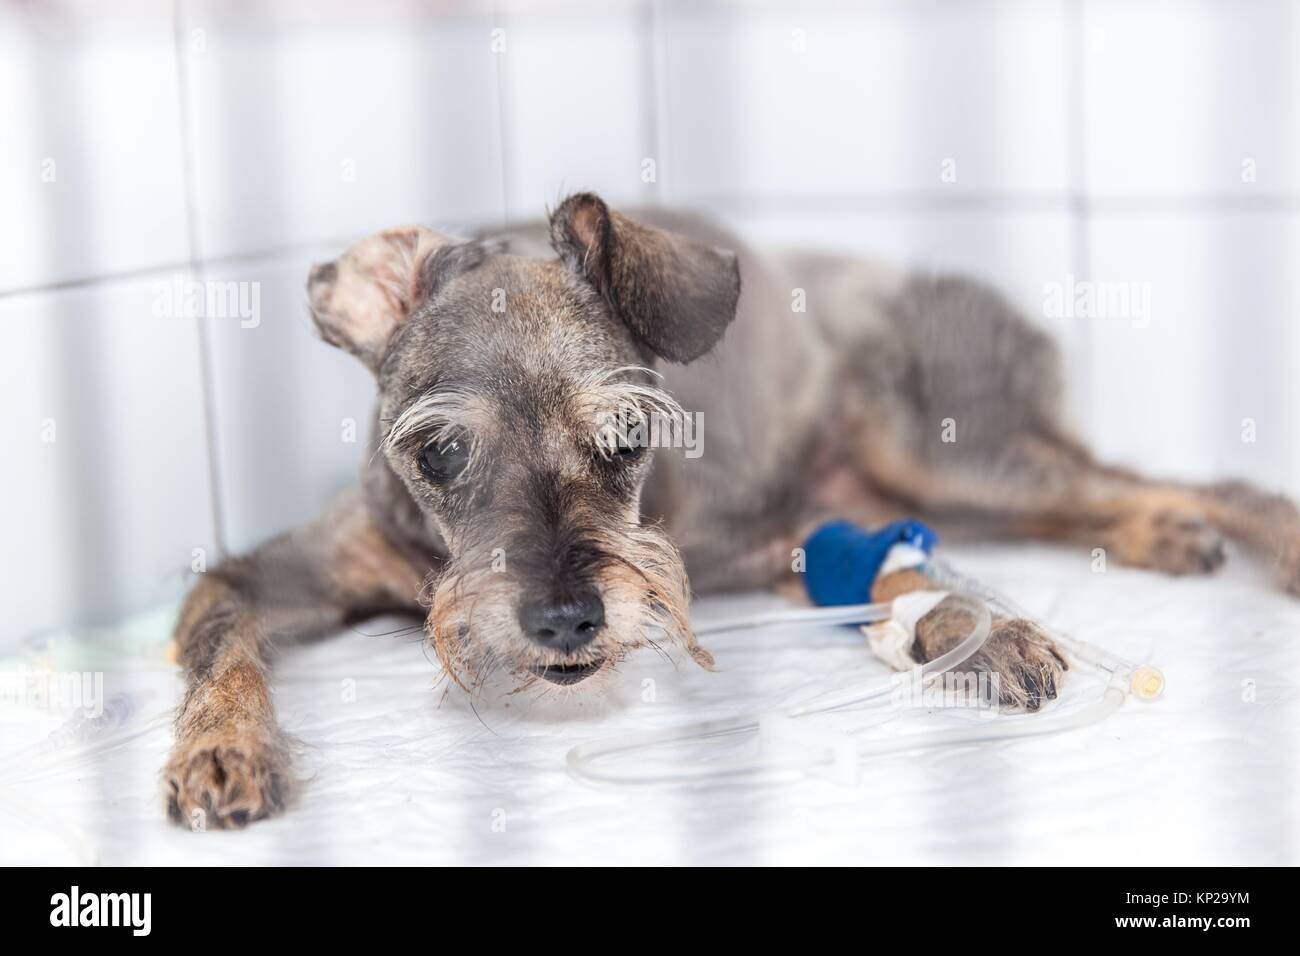 dog at the vet´s undergoing a medical treatment Stock Photo